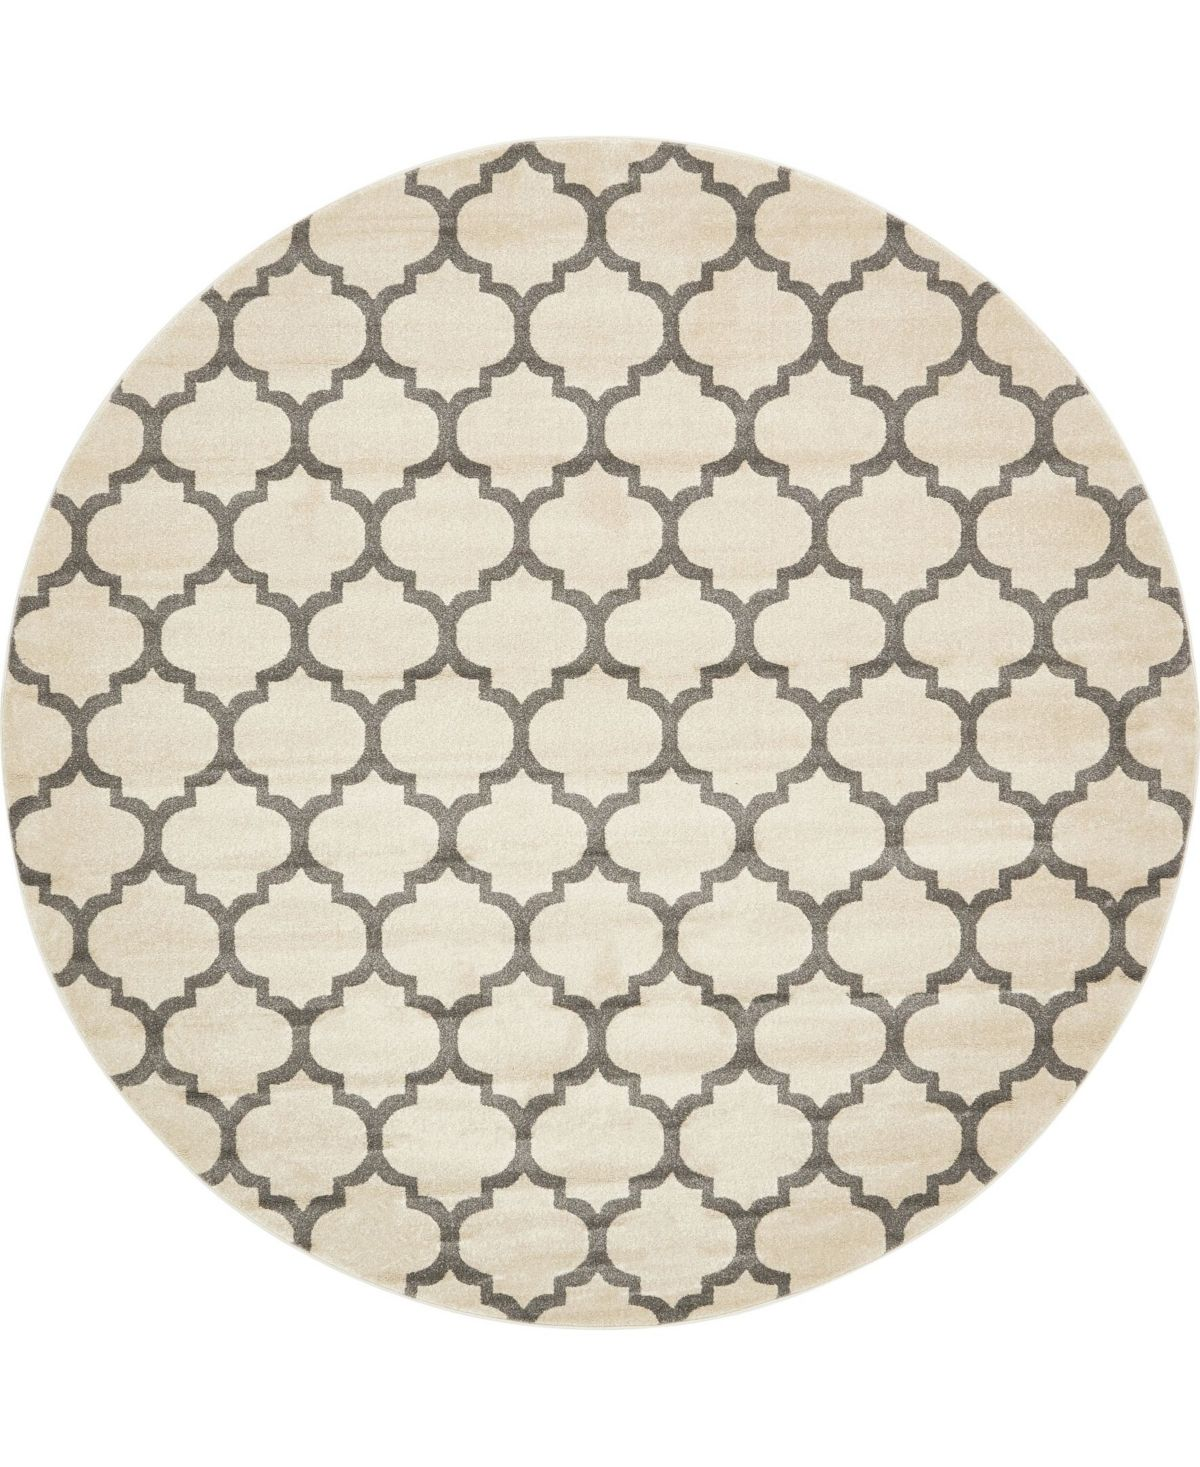 Bridgeport Home Arbor Arb1 Beige Gray 10 X 10 Round Area Rug Reviews Rugs Macy S Round Area Rugs Beige Rugs